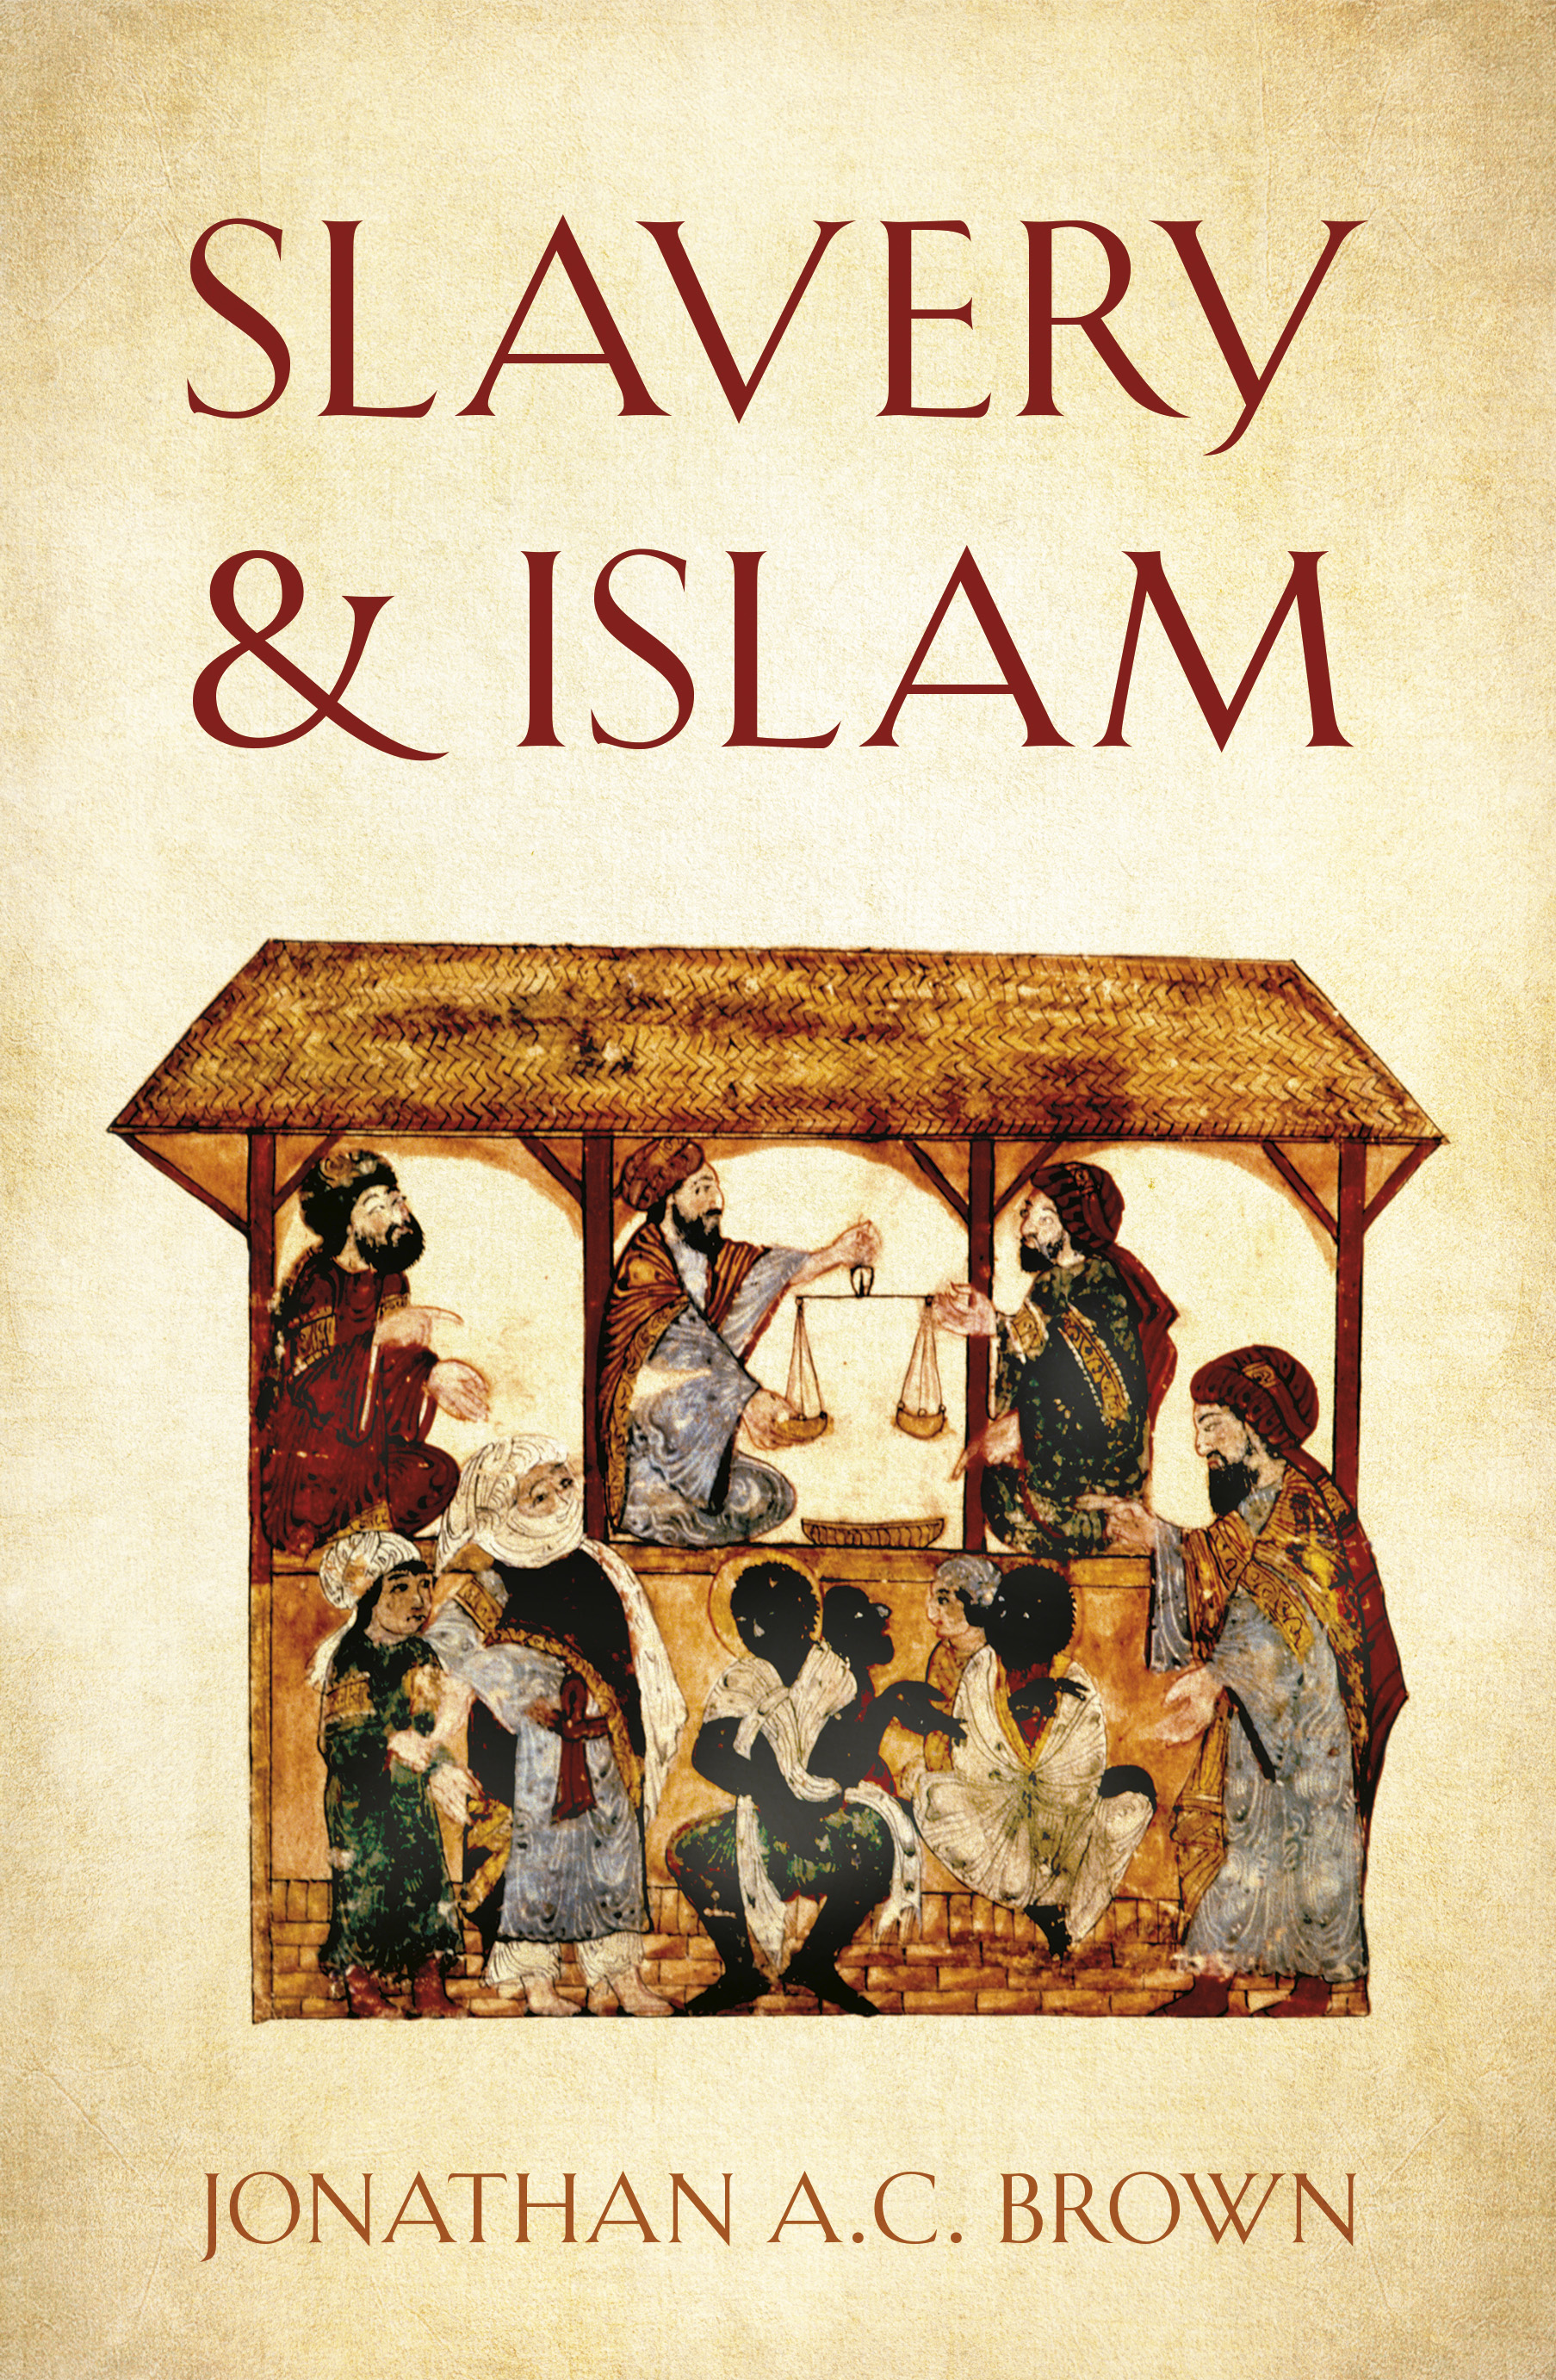 Ebook Slavery And Islam Par Jonathan A C Brown 7switch